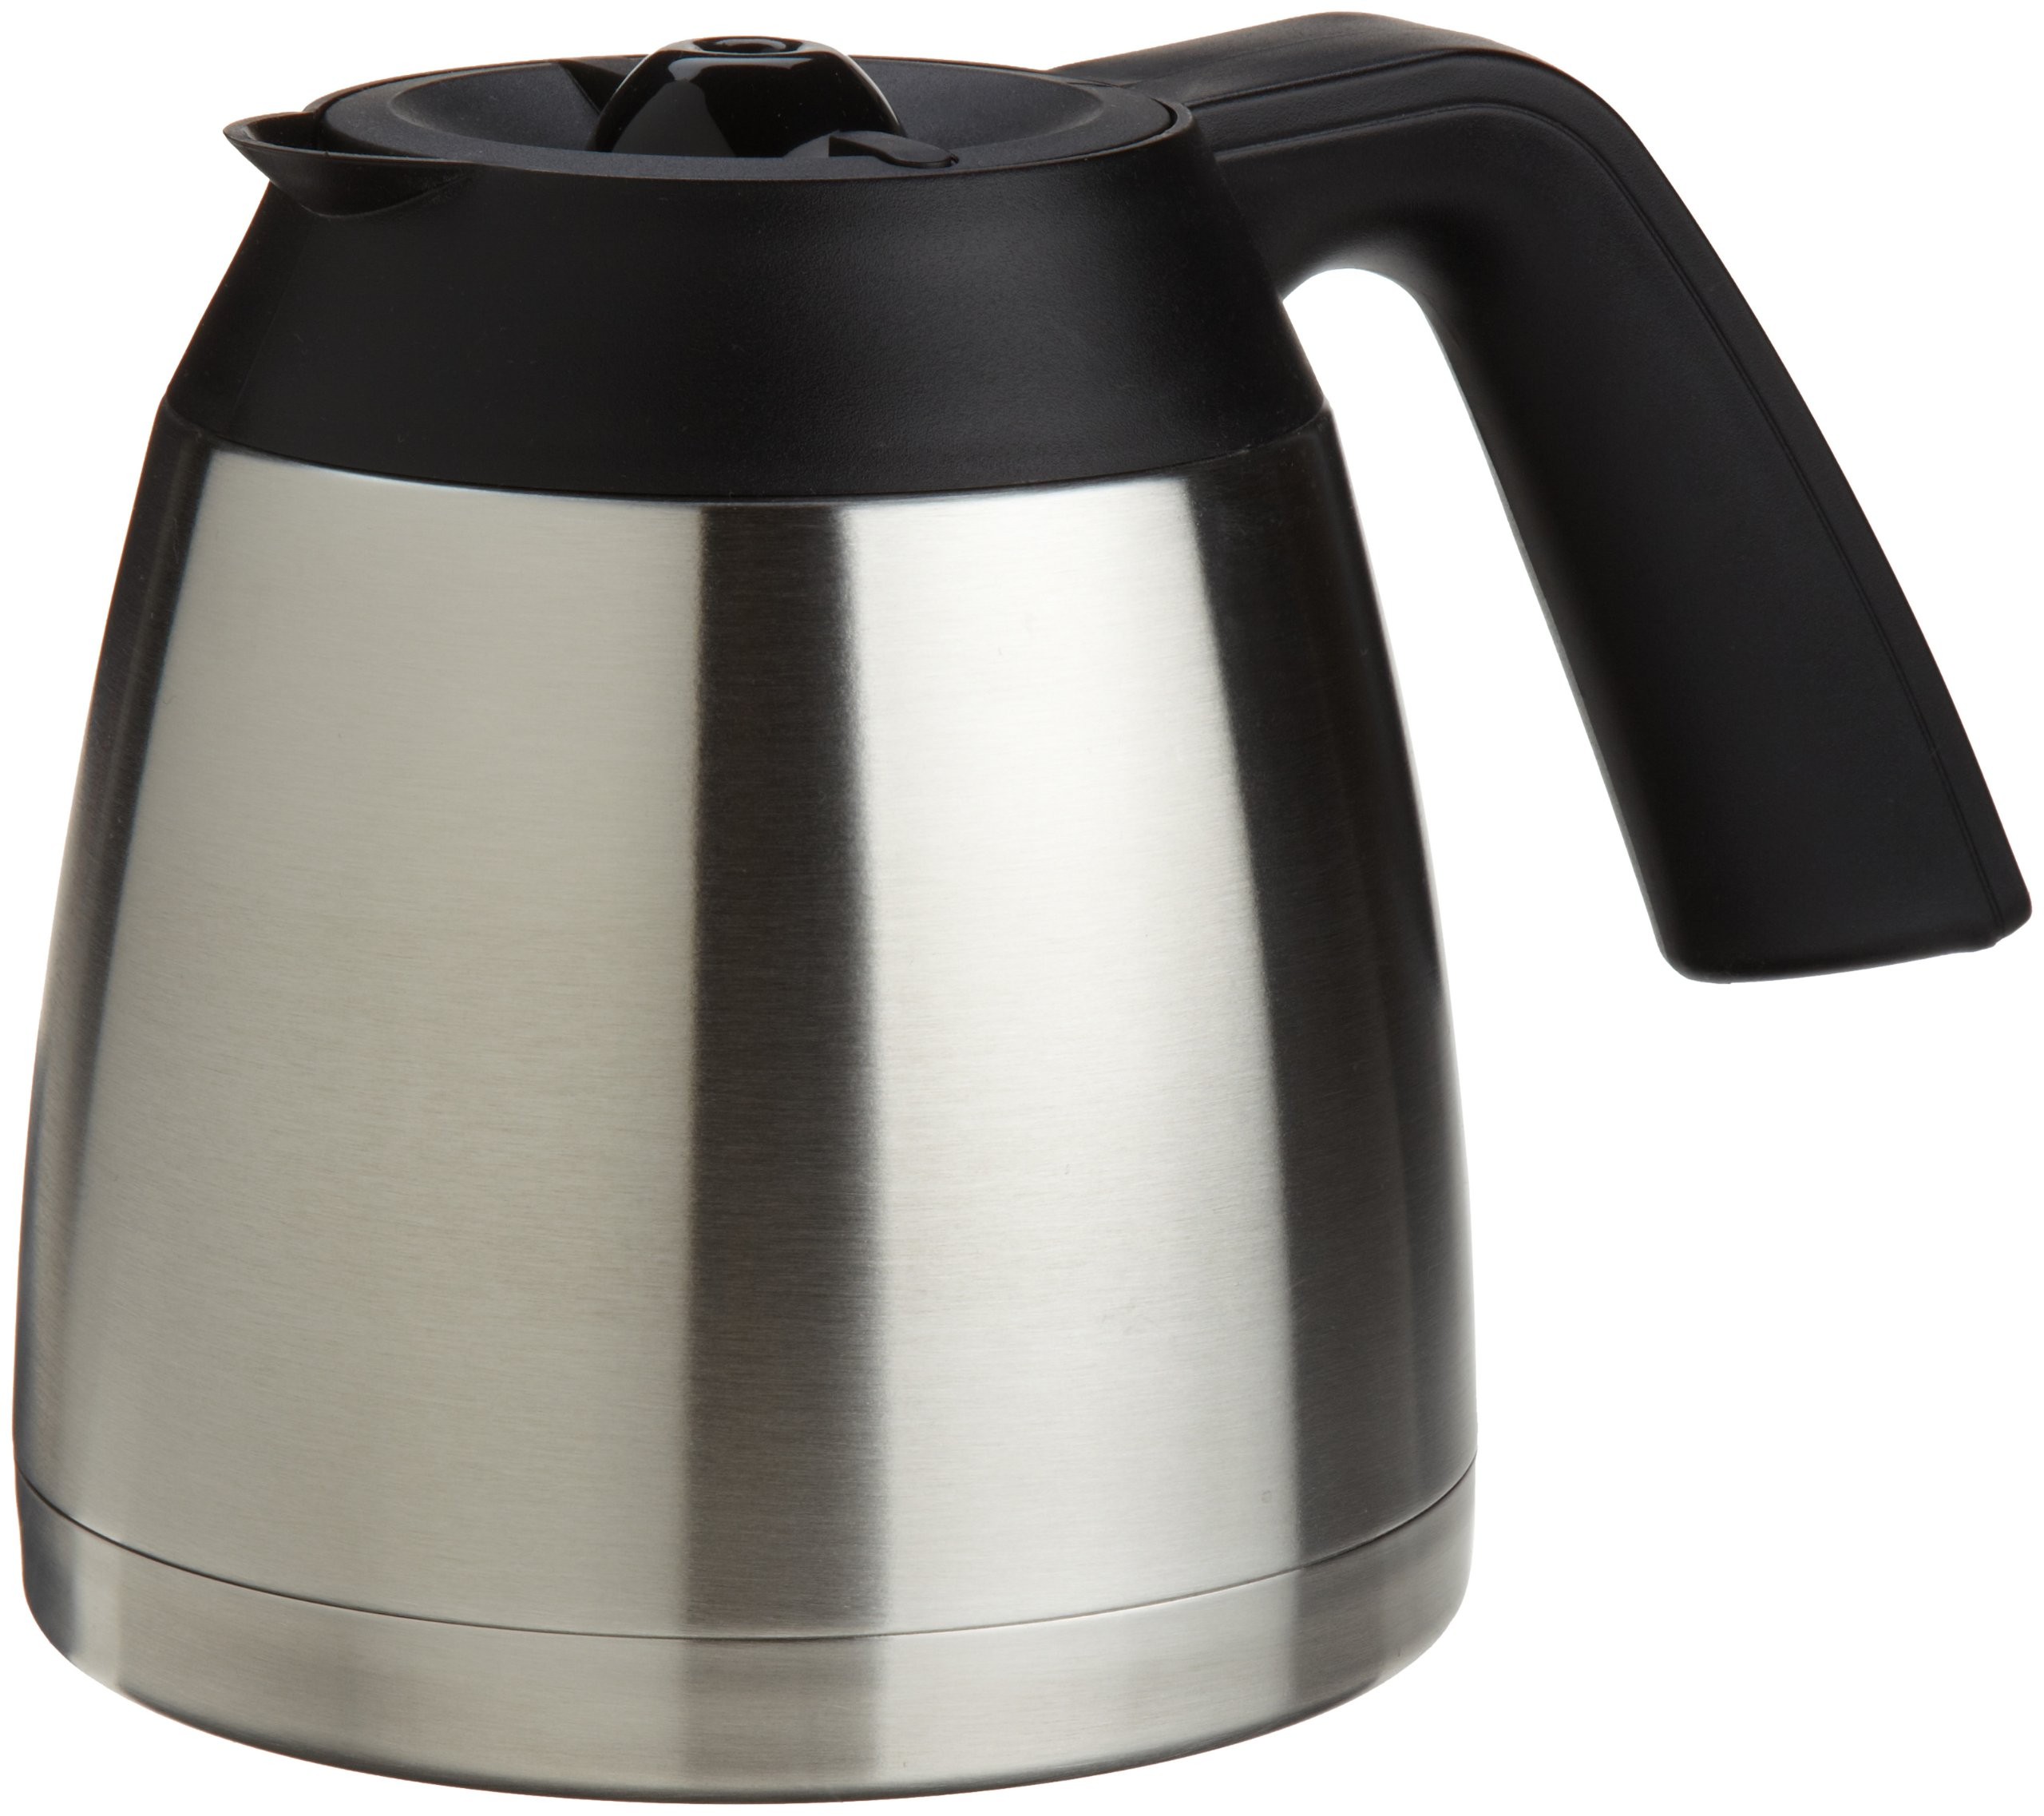 Capresso 4445.05 10-Cup Stainless Steel Thermal Carafe with Lid for MT600 Coffee Maker